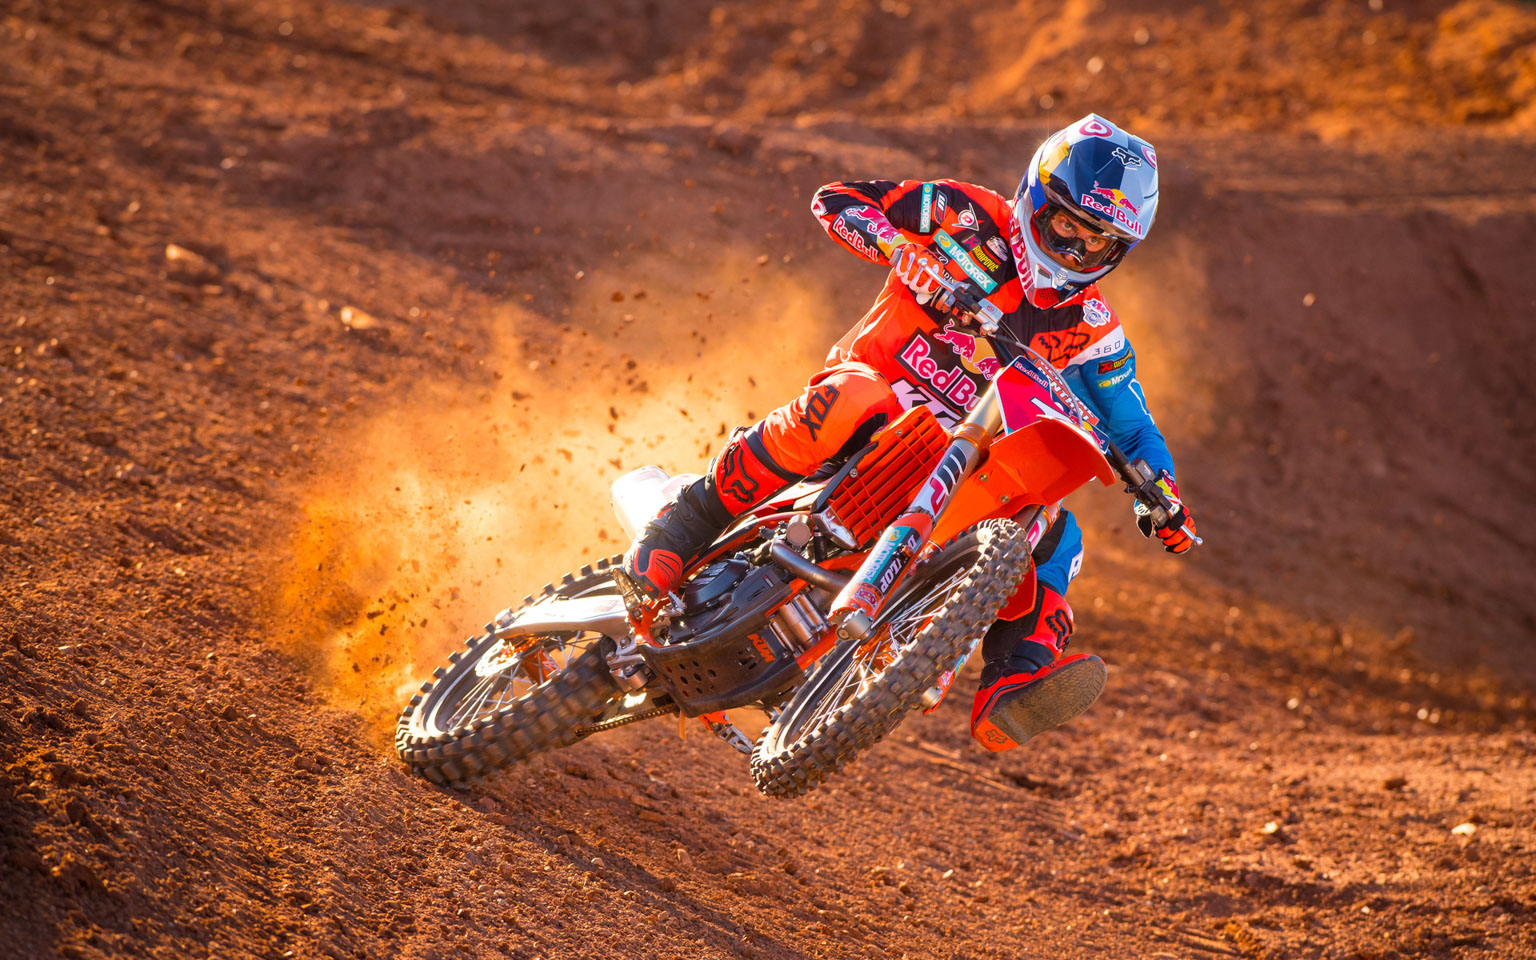 Ryan Dungey spanks the 2017 factory 450